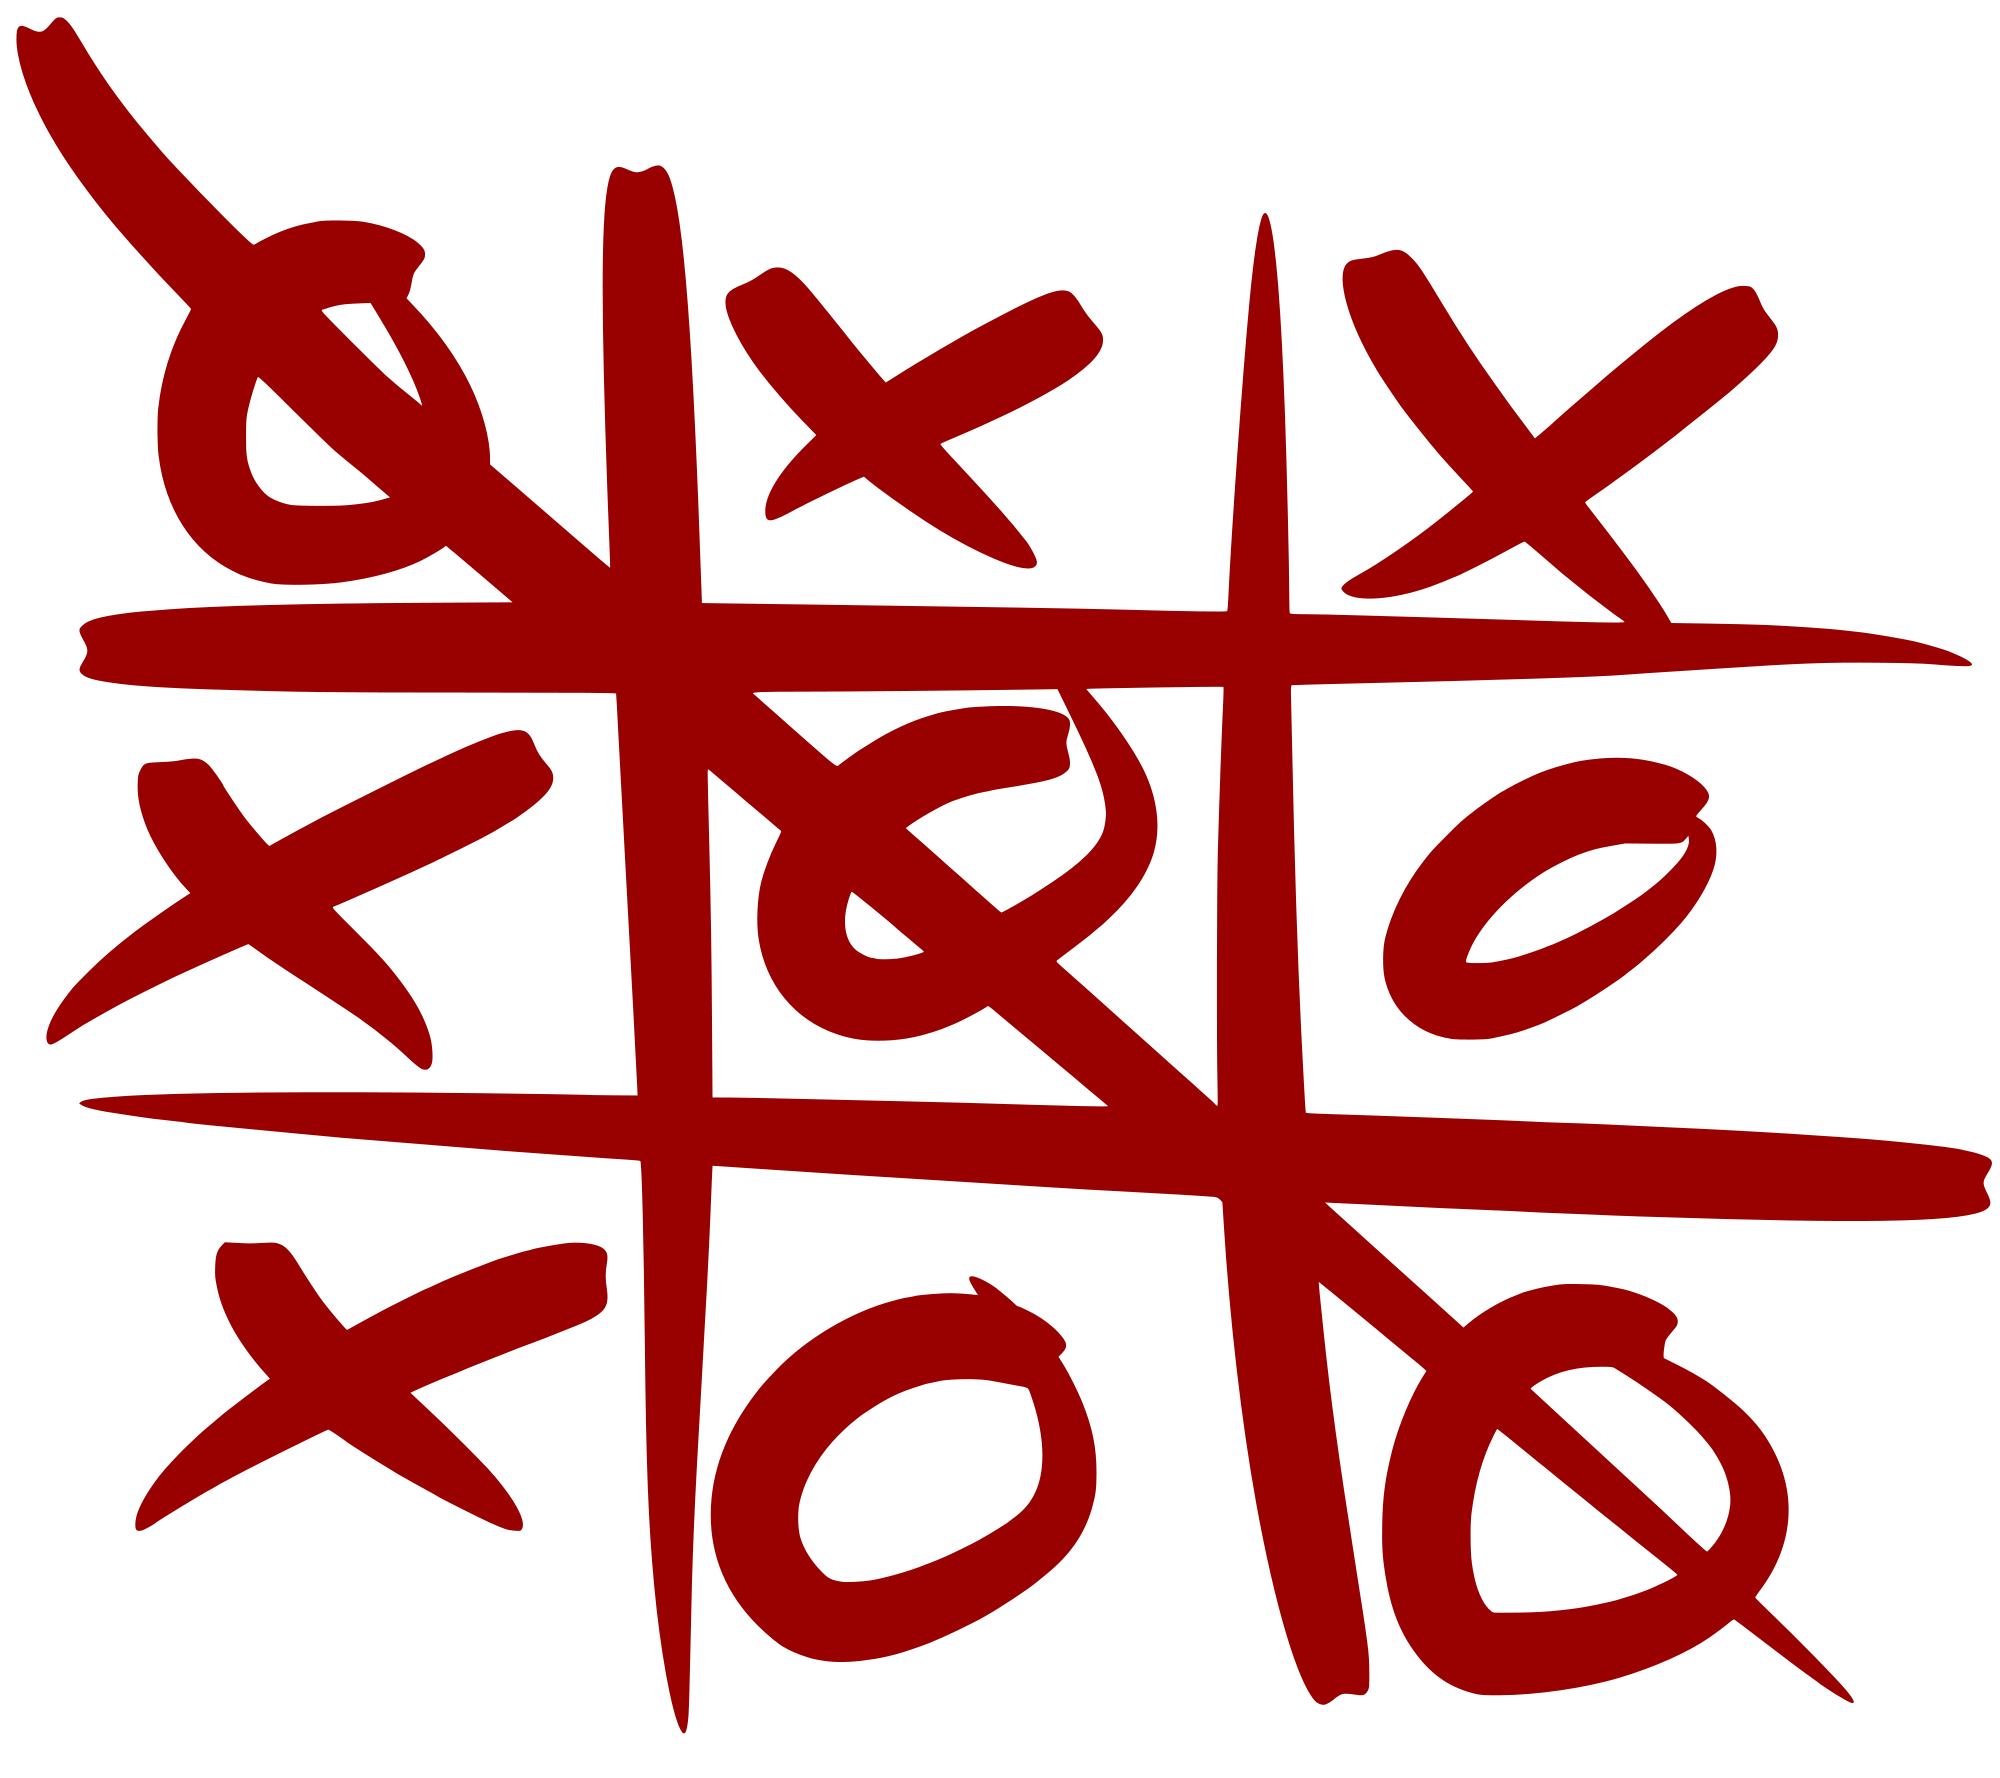 Tic tac toe photo